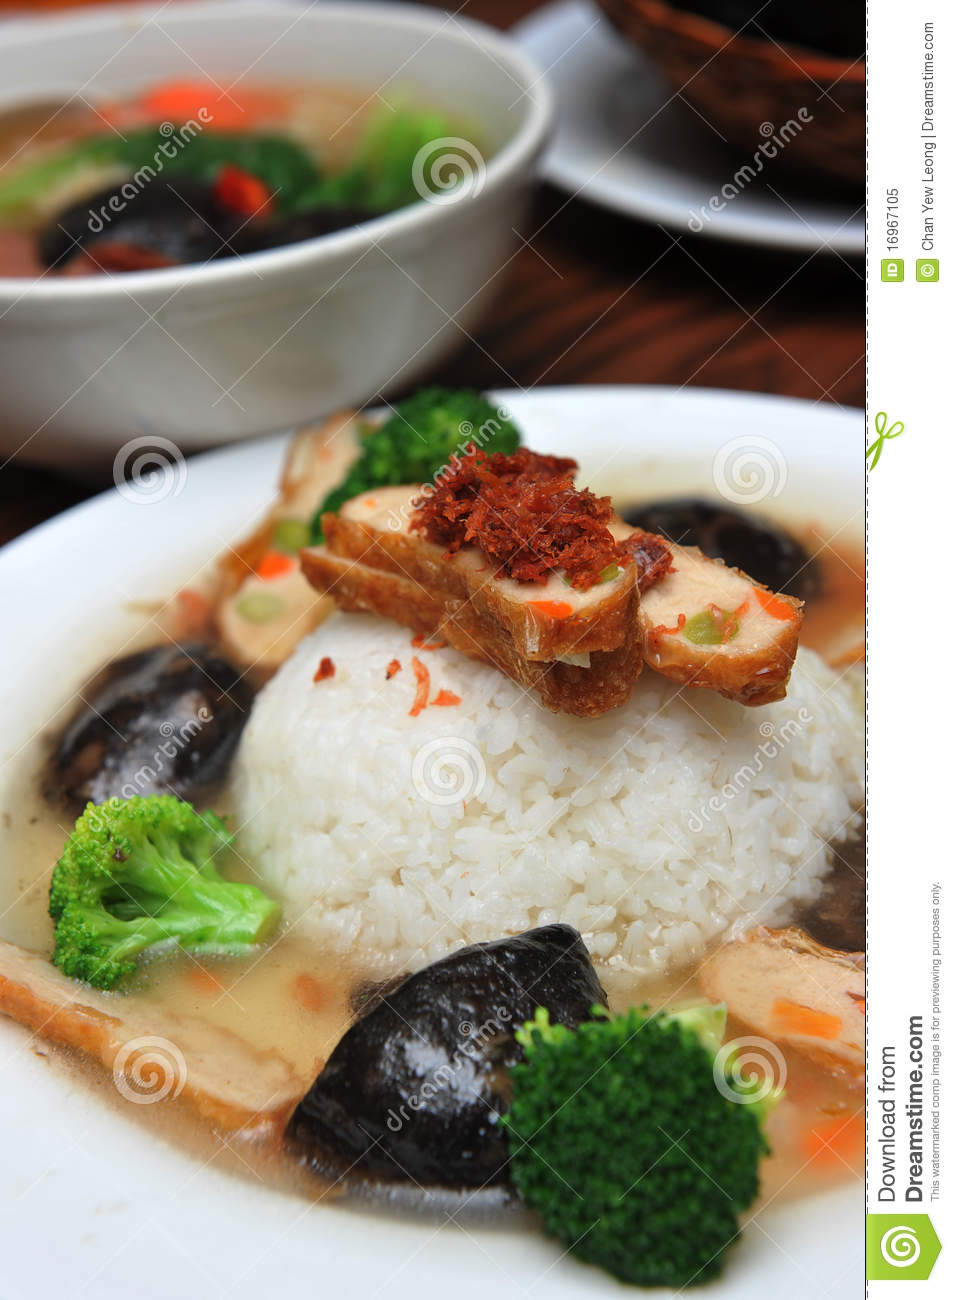 Asian cuisine royalty free stock photo image 16967105 for Asia asian cuisine